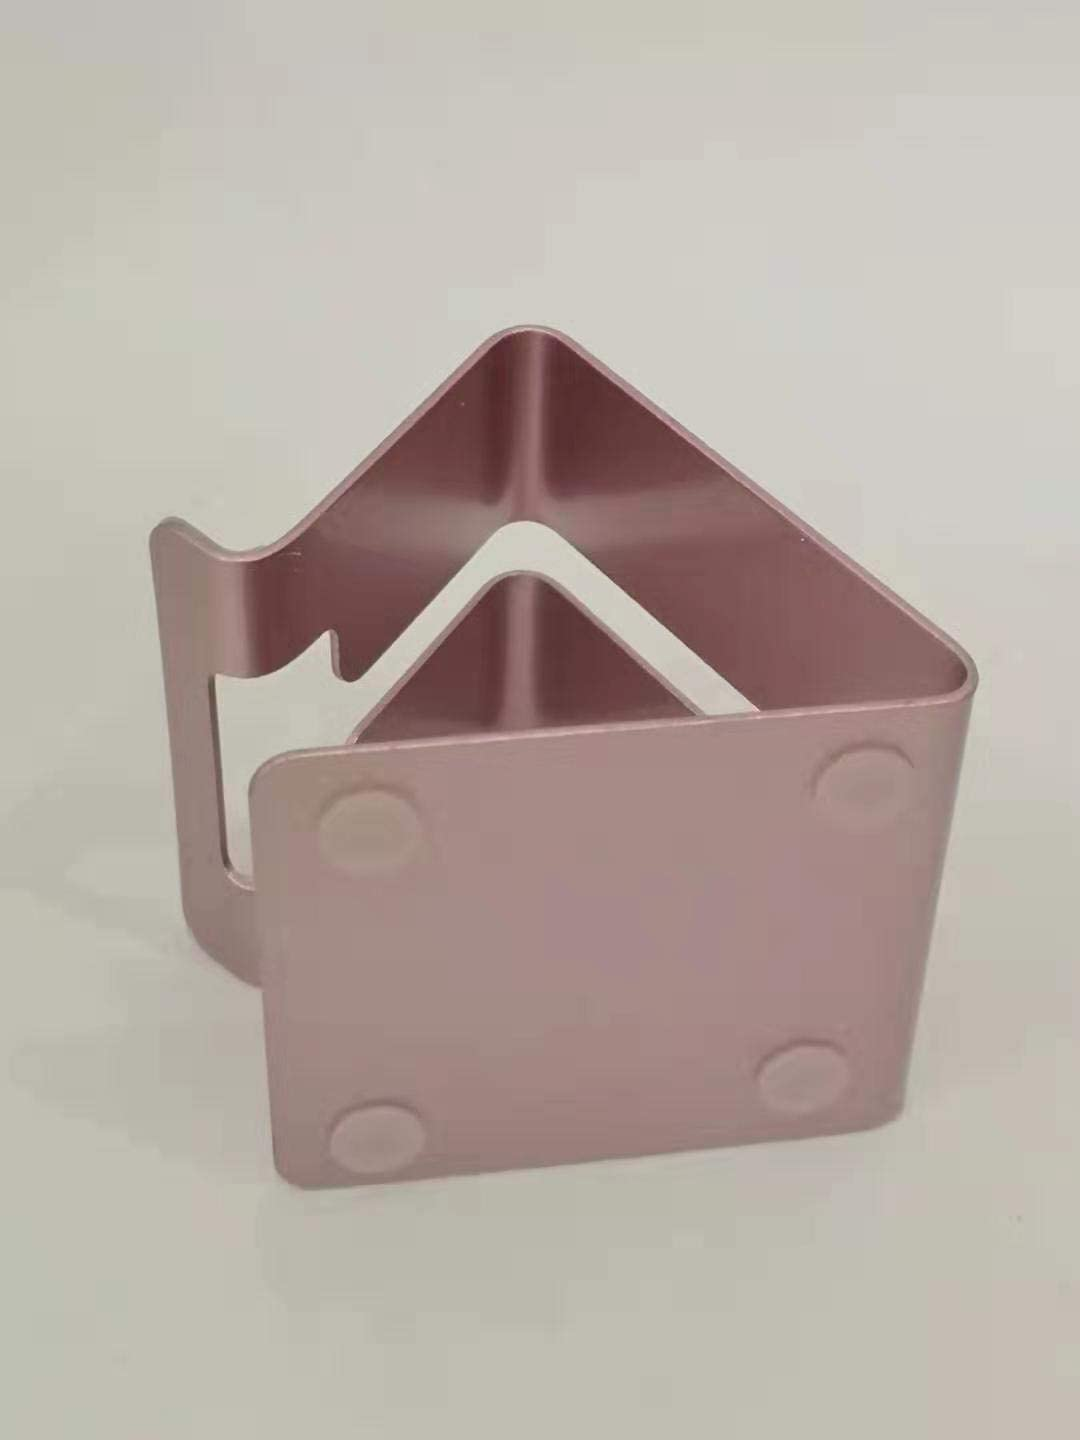 Pink Universal Display Desktop Holder Cradle YDF Version Solid Aluminum Cell Phone Tablet Desk Charging Stand Compatible with iPhone iPad Mini Android Home Office Travel Kitchen.